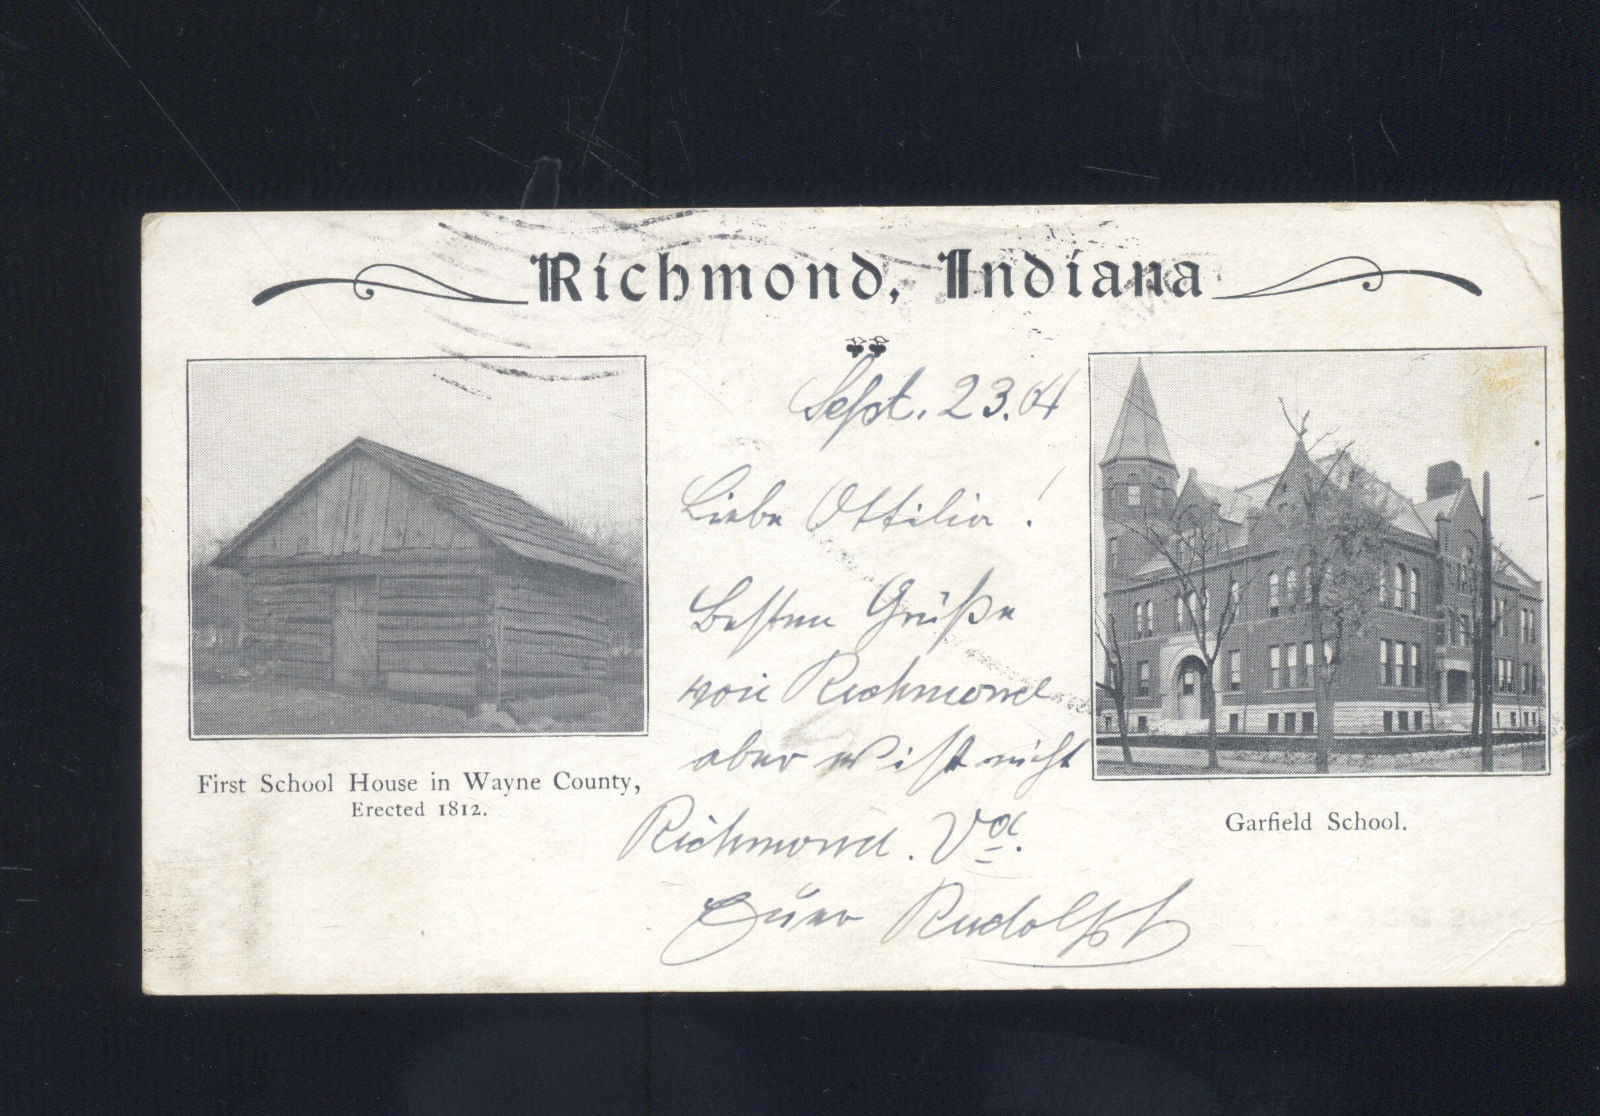 Richmond Indiana 1907 Garfield School First School House Wayne Co Postcard Hippostcard